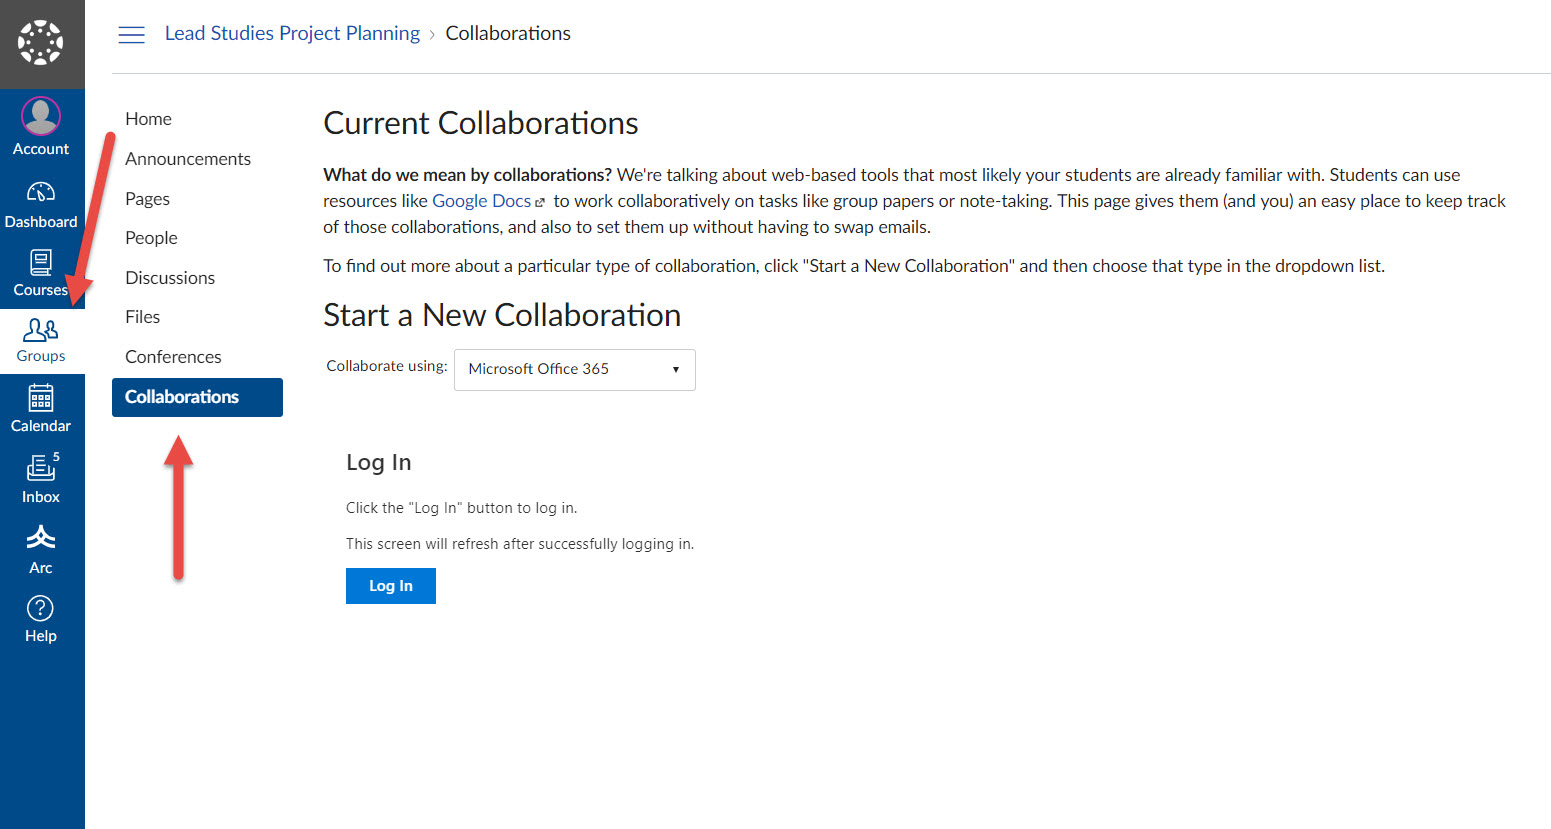 Group and Collaborate buttons in Canvas LMS Navigation